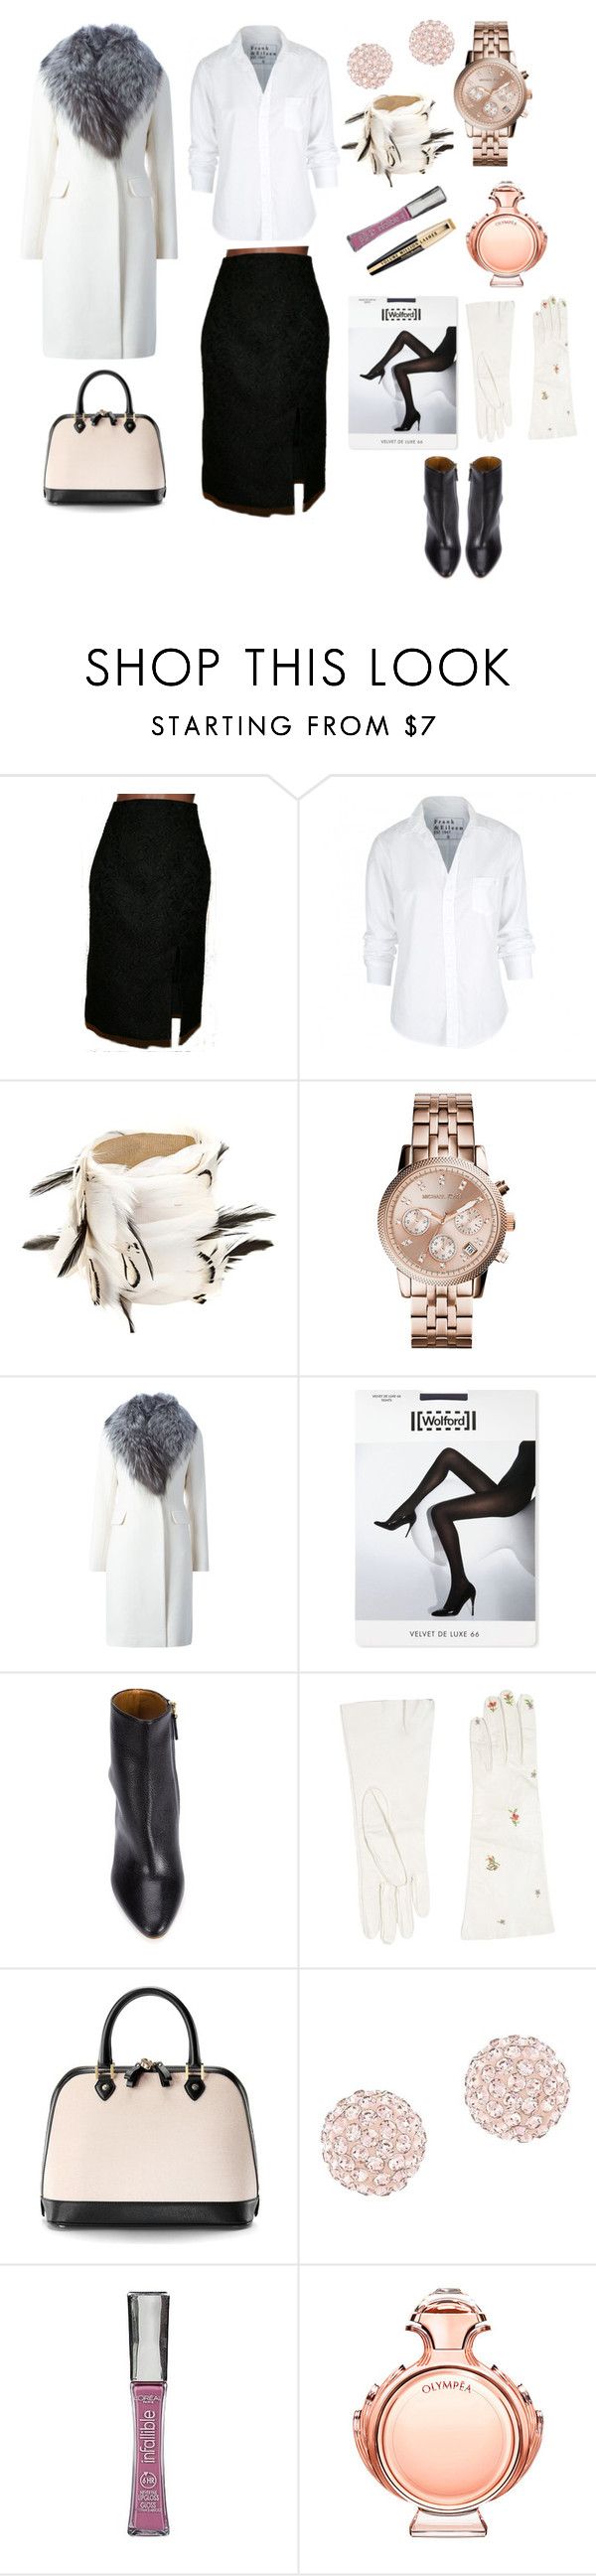 """""""Office Style"""" by elena-kononenko ❤ liked on Polyvore featuring Frank & Eileen, My Vintage Academy, Michael Kors, Diane Von Furstenberg, Wolford, Chloé, Dsquared2, Aspinal of London, Swarovski and L'Oréal Paris"""